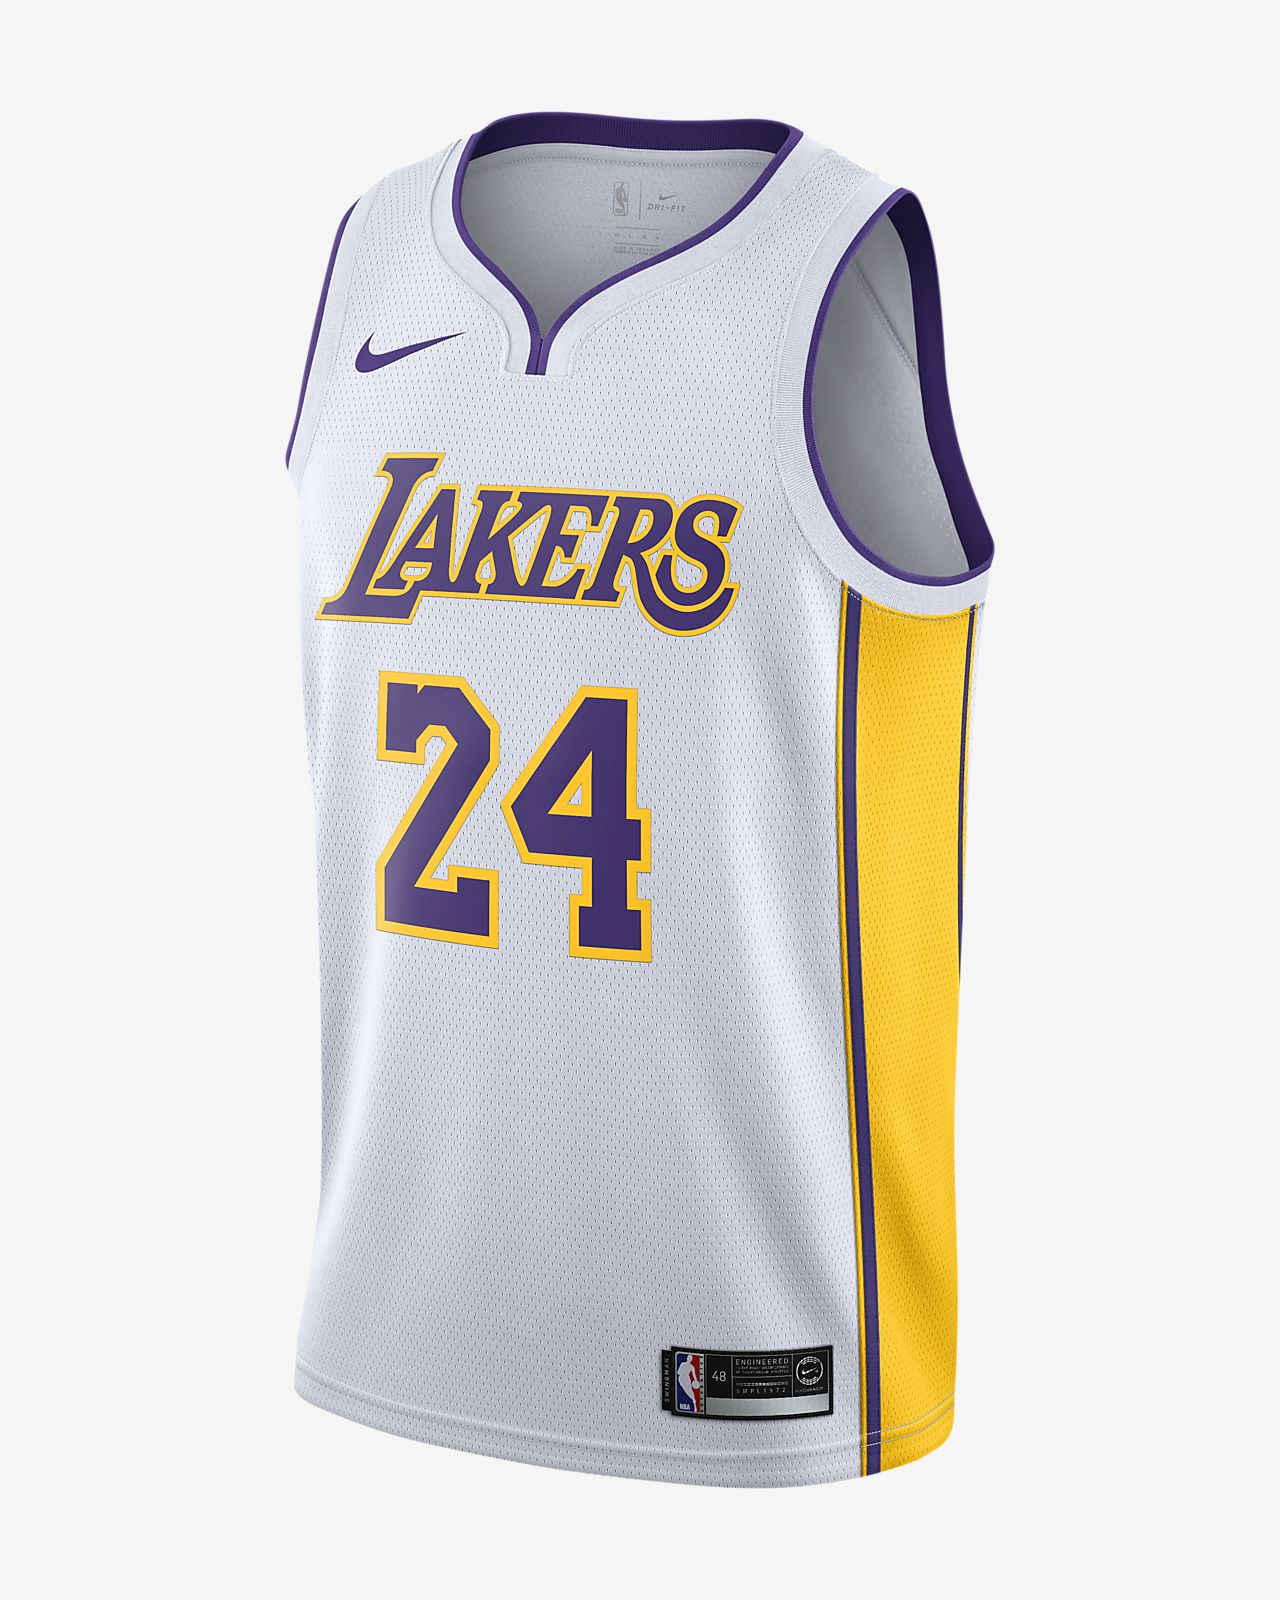 Men s Nike NBA Jersey. Kobe Bryant Icon Edition Swingman (Los Angeles Lakers ) c6608ac47